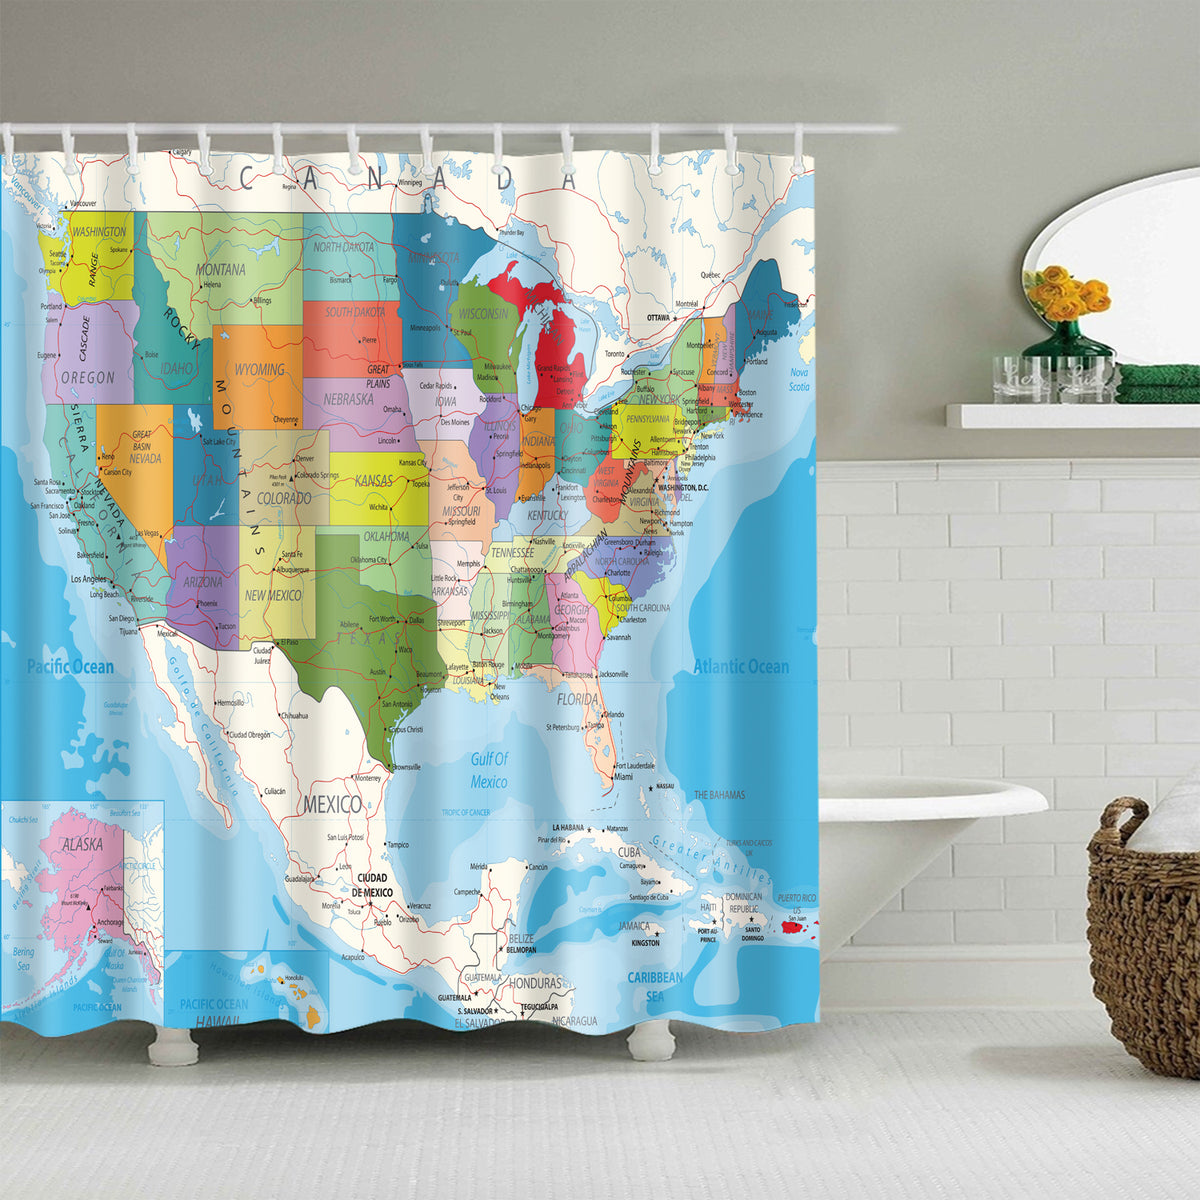 Colorful American United States Map Shower Curtain on united states map high resolution, united states map tumbler, united states map pillow, united states map large wall, united states map quilt, united states map fabric, united states map rug, united states map clock, united states military armed forces, united states map art, united states map placemat, united states map food, united states map comforter, united states map with rivers, united states map wallpaper, united states map with landmarks, united states map wall mural, united states map zoom in, united states map rhode island, united states map decor,